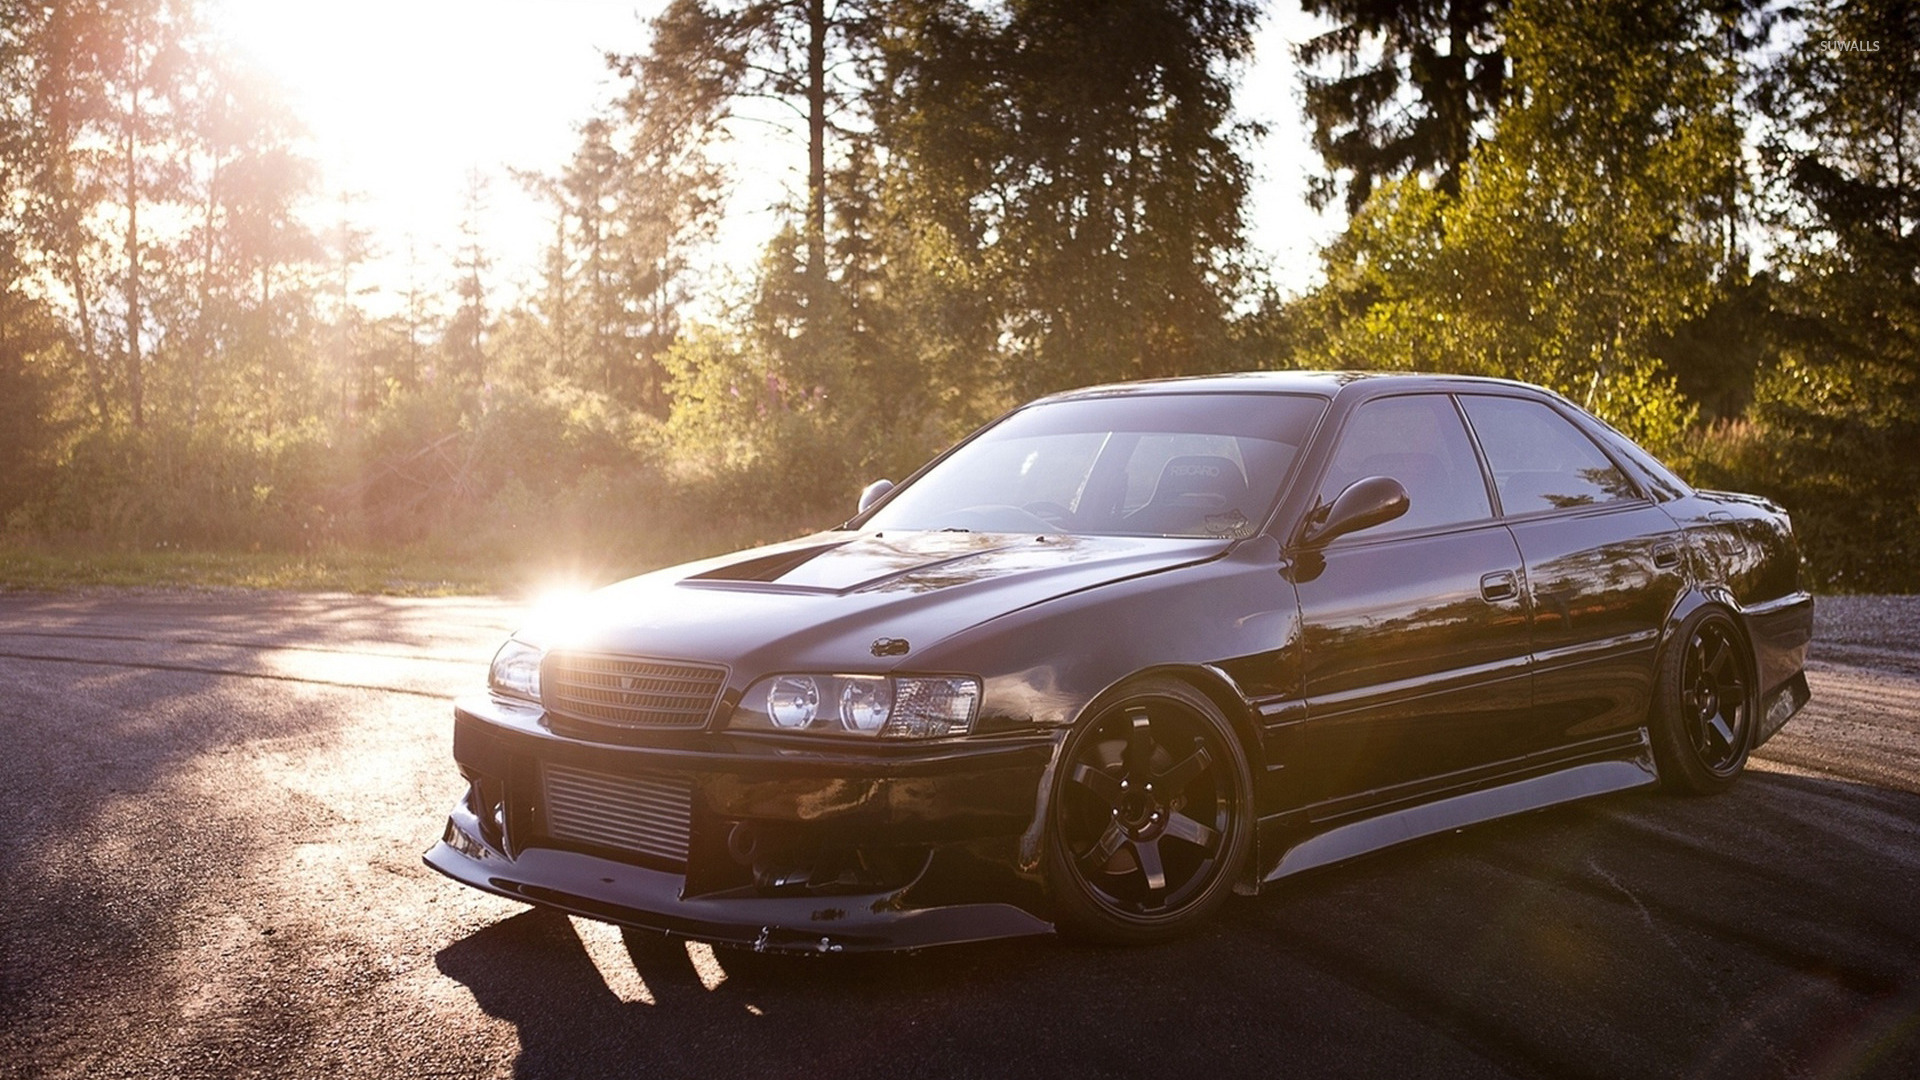 Toyota Camry Hd Wallpapers Toyota Chaser Wallpaper Car Wallpapers 38446